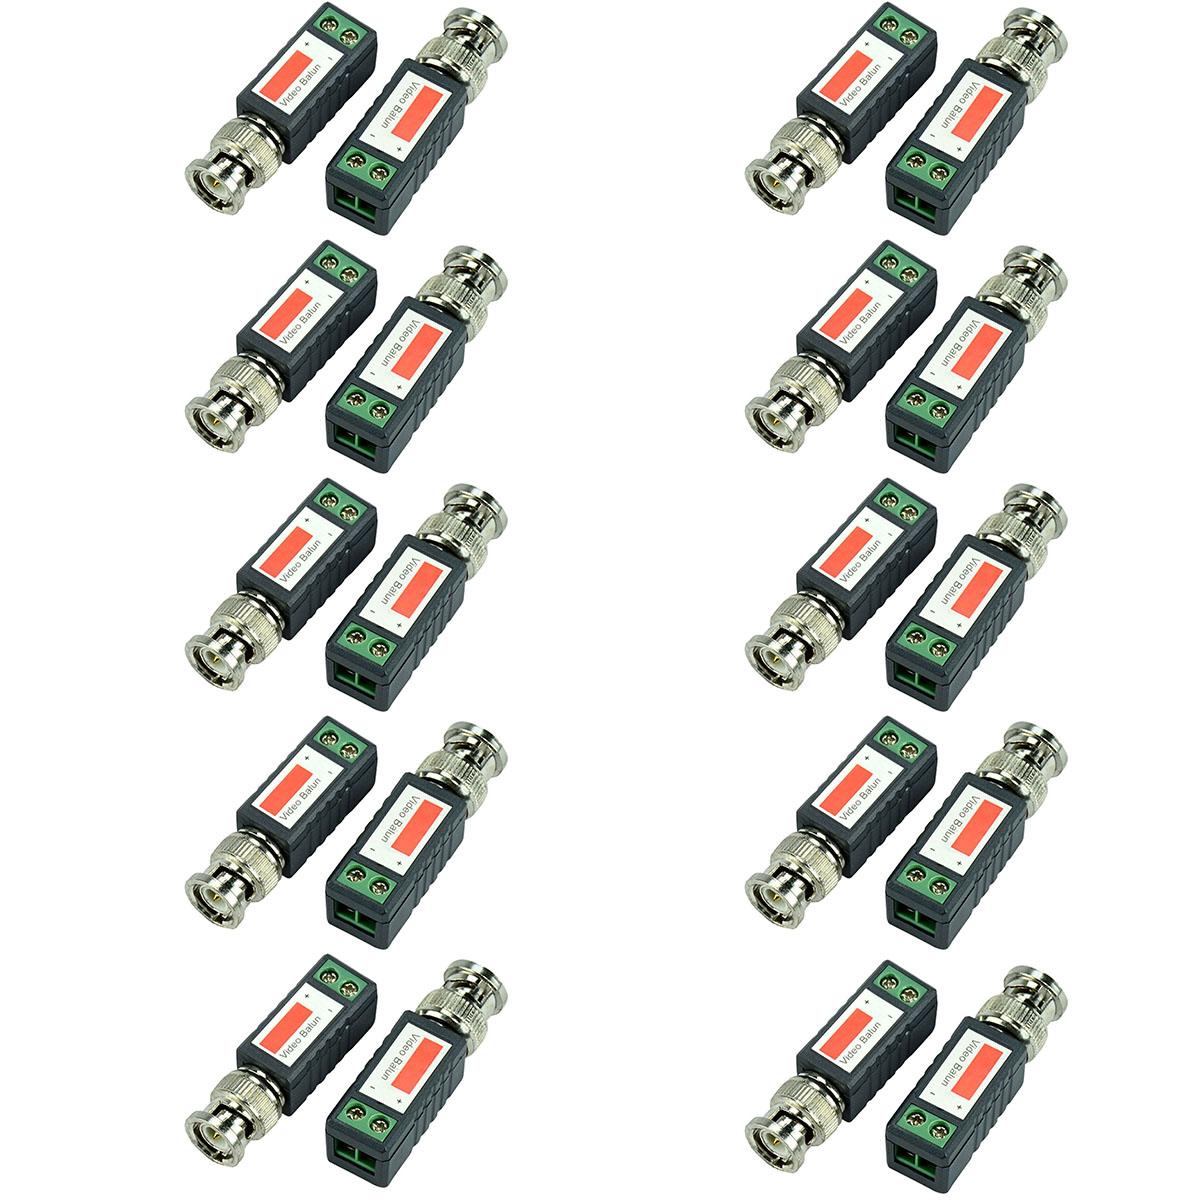 10 Pairs Single 1 Channel BNC Connector Coaxial Adapter For Balun CCTV Camera DVR BNC UTP Passive Video Transceiver